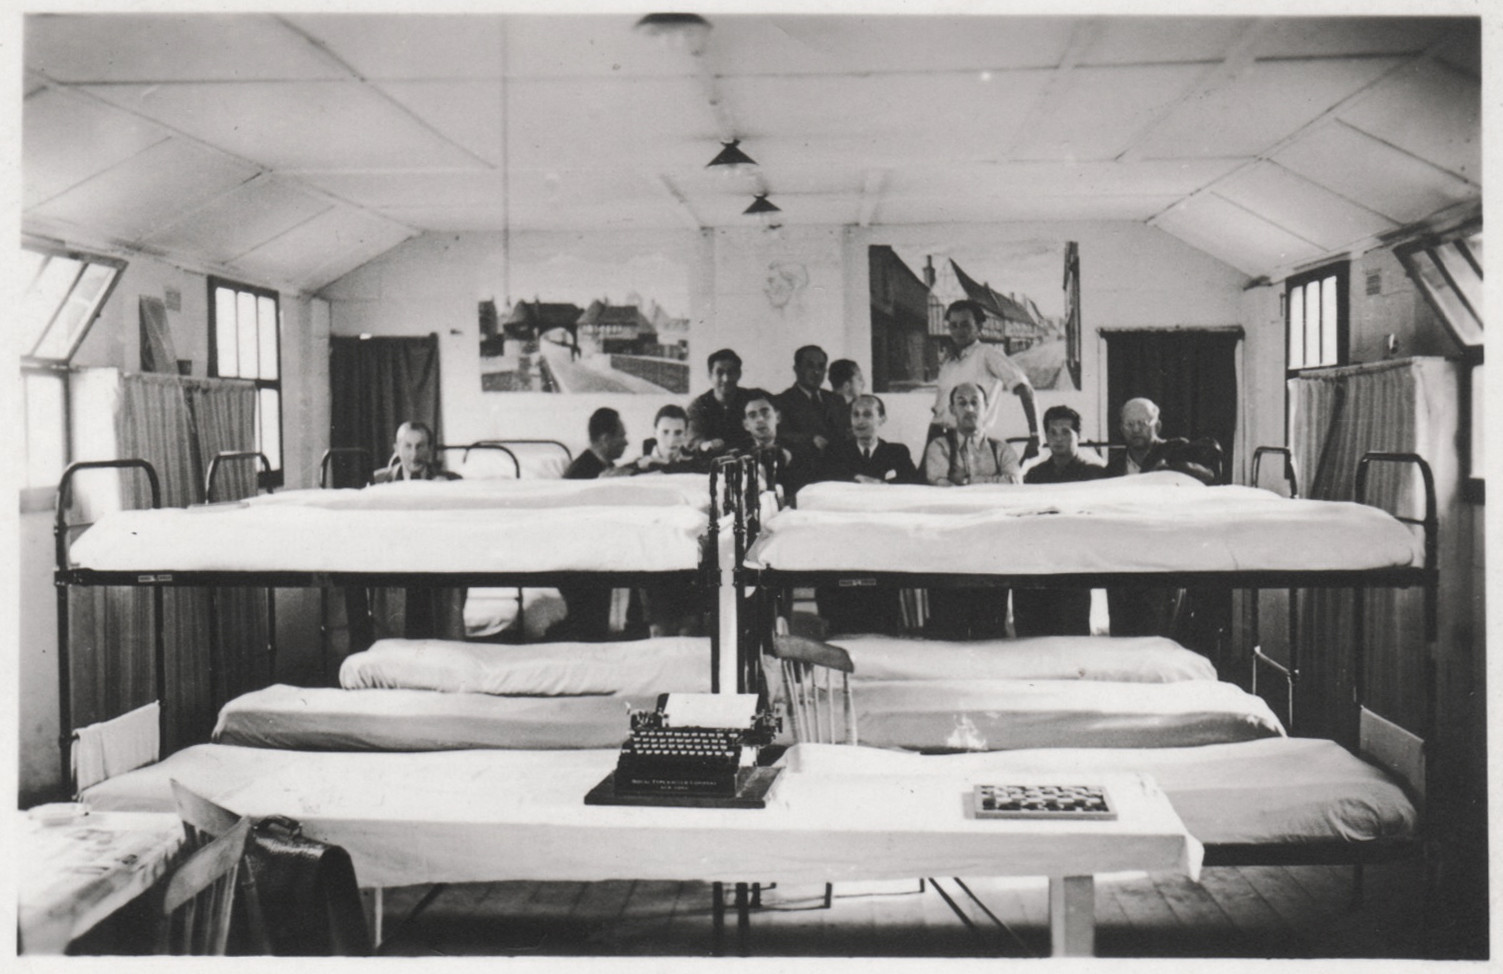 Jewish refugees pose behind their bunk beds in a barracks in the Kitchener refugee camp.